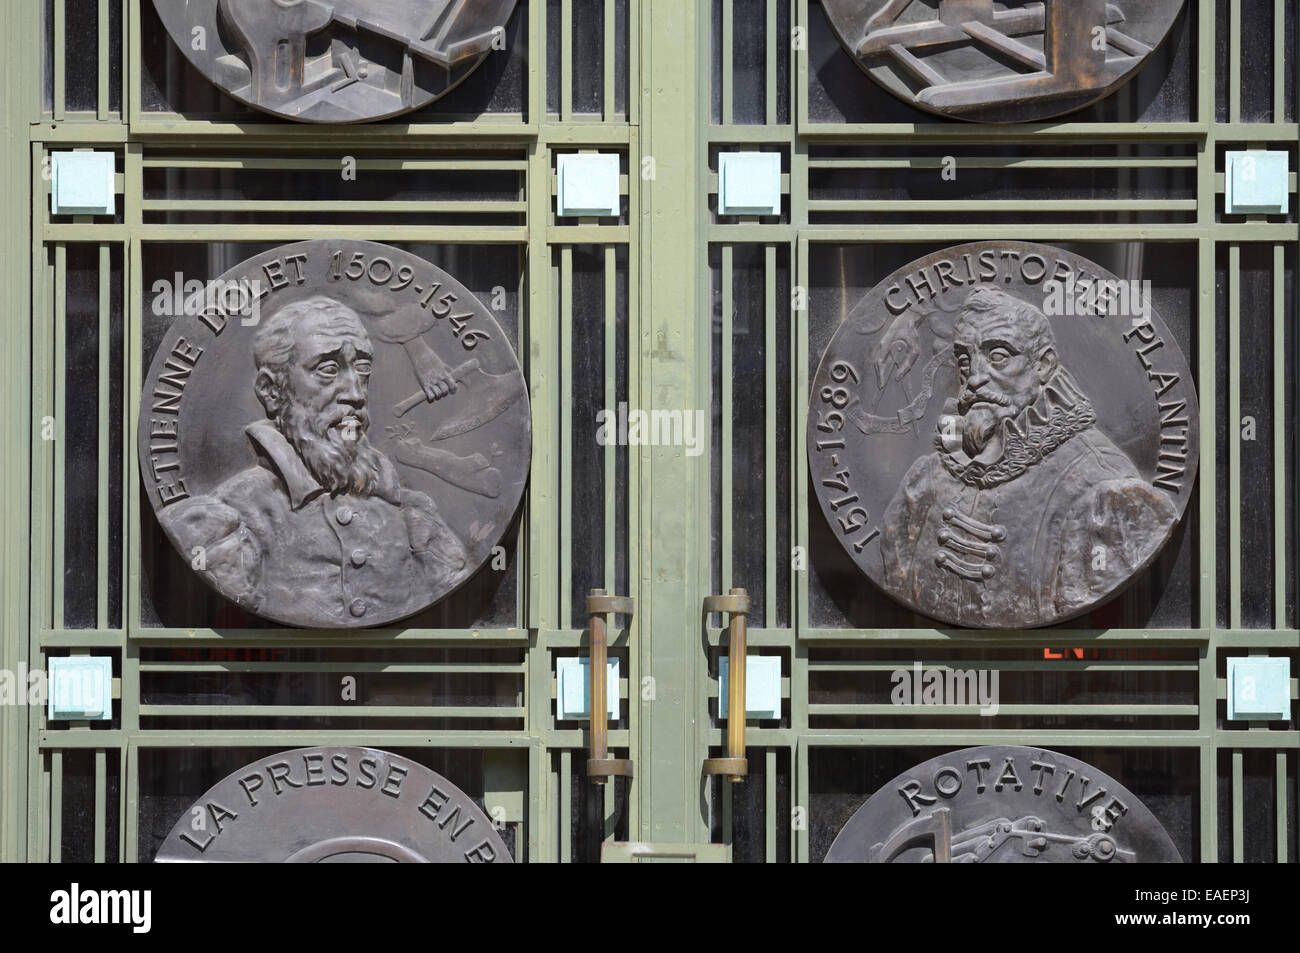 Portraits of French Printers Etienne Dolet (1509-1546) & Christophe Plantin (c1520-1589) 30s Art Deco Metalwork - Stock Image